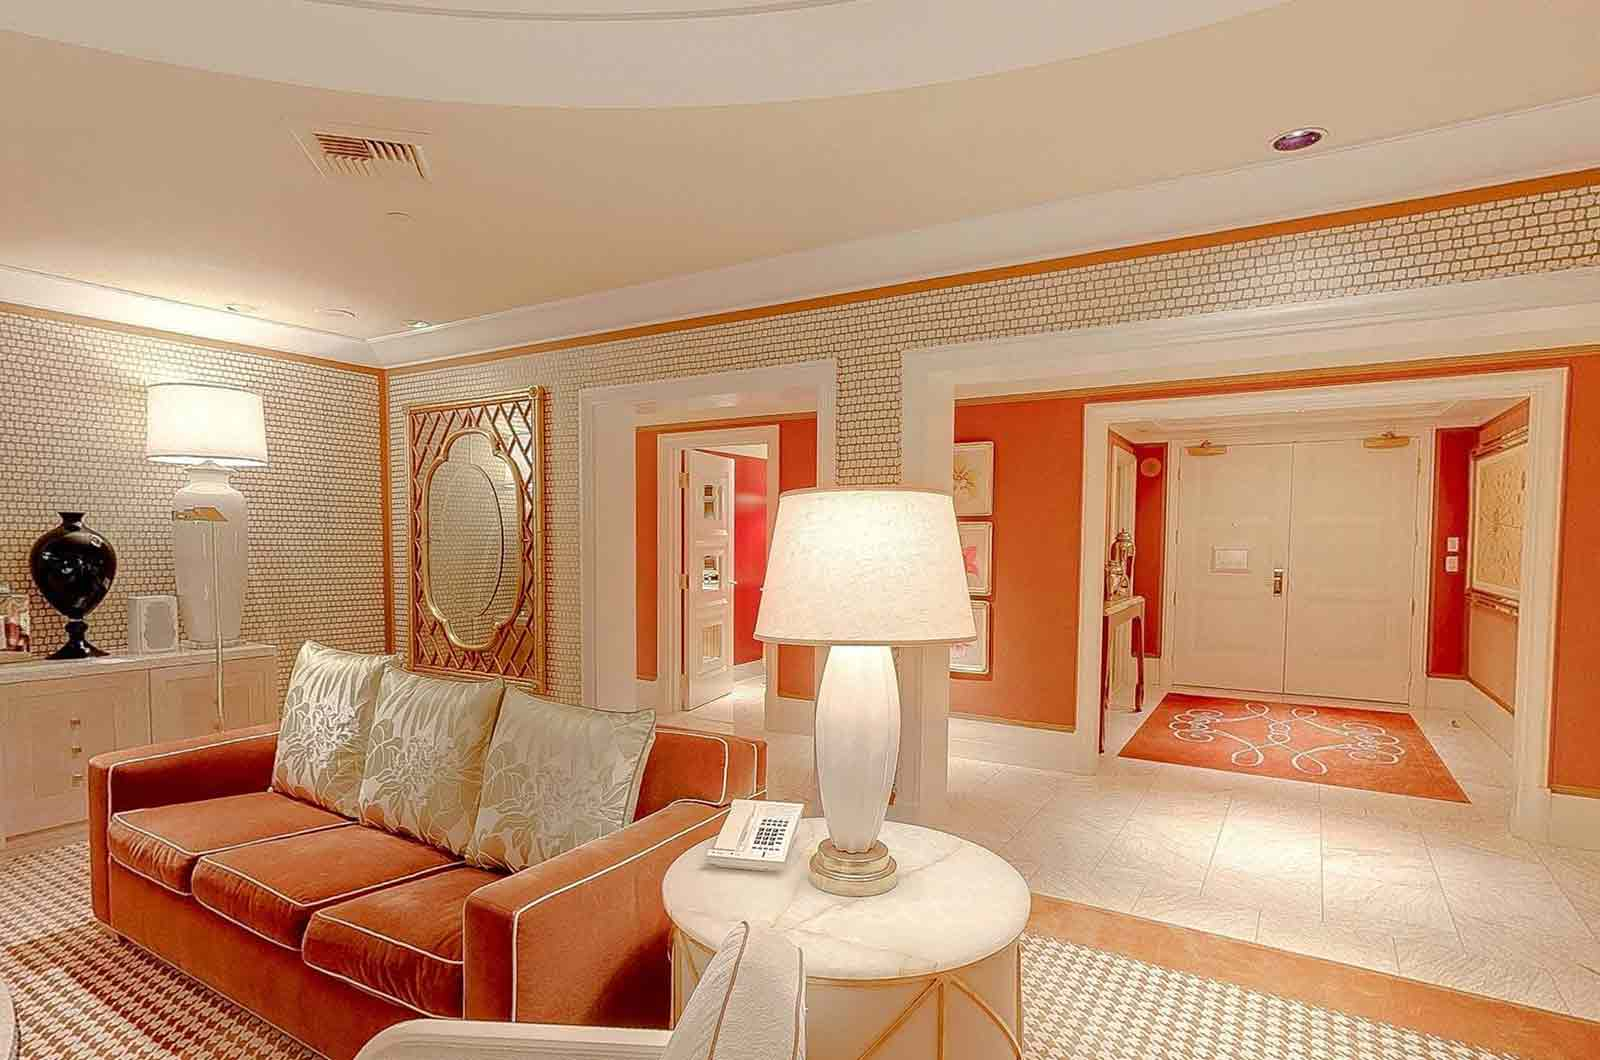 Feat-Hotel-360-Virtual-Tours